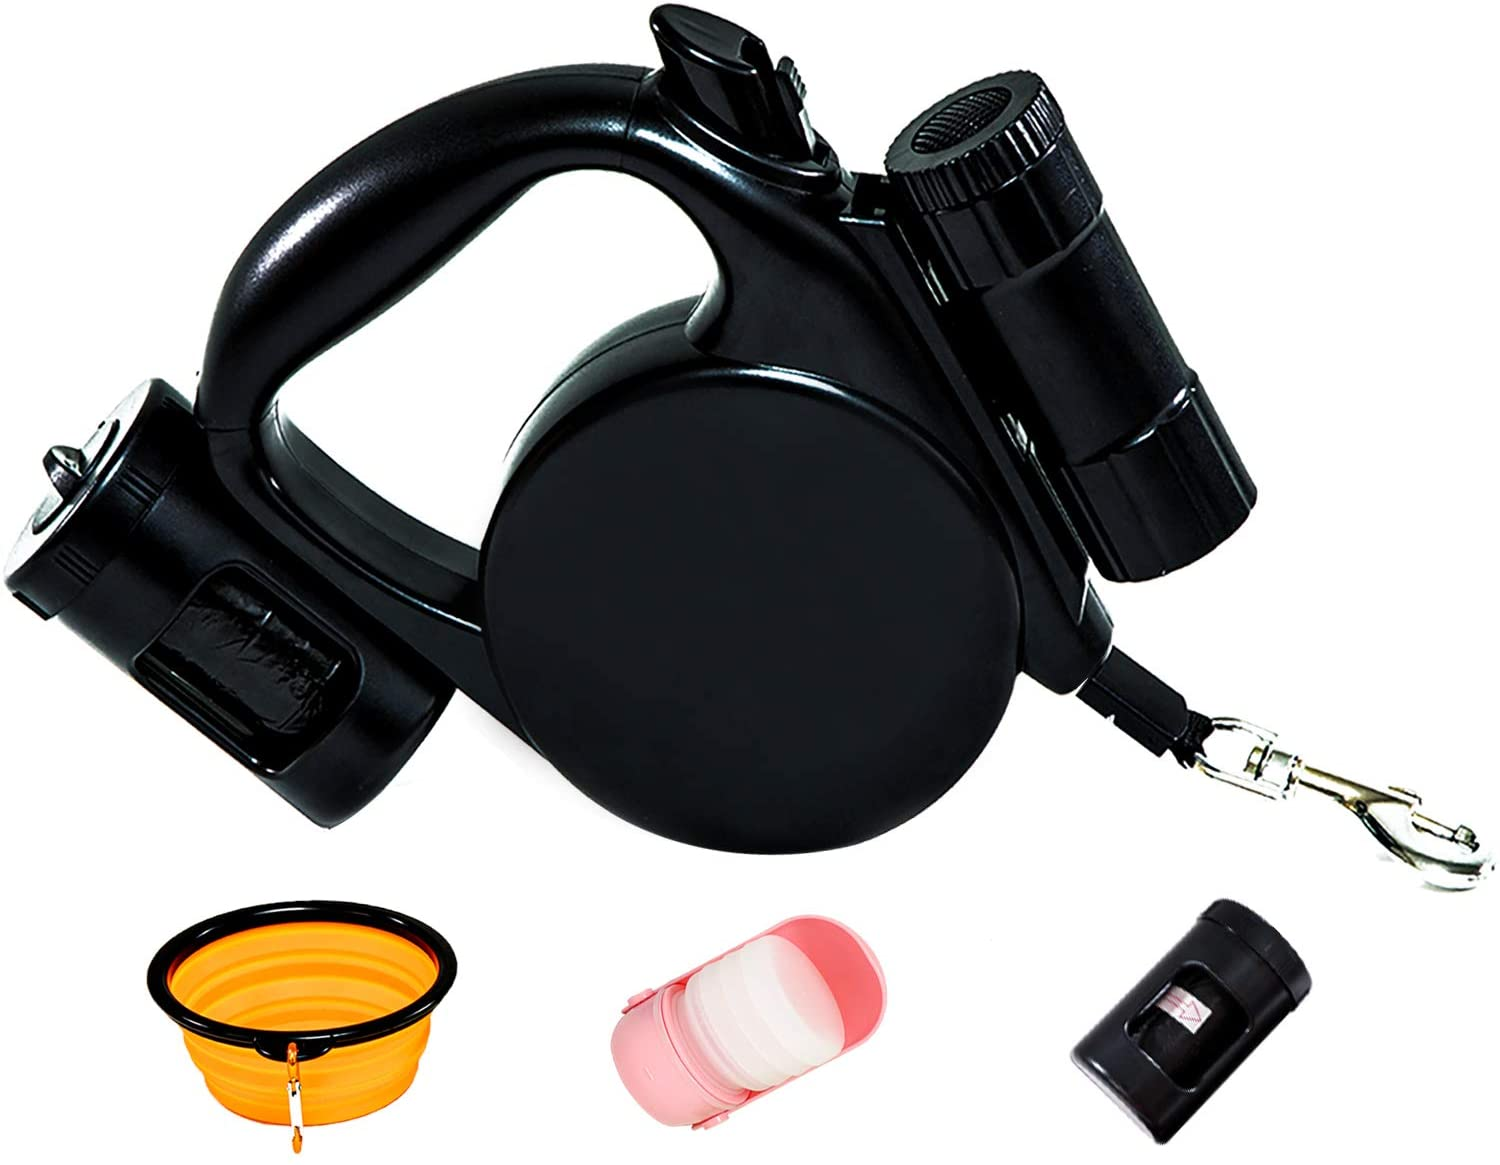 Retractable Dog Leash + Dog Bowl + Dog Water Bottle Bundle w/ 360° Tangle Free and One Hand Brake Pause Lock 16Ft Dog Leash for Small/Medium/Large Puppies (20 Poop Bag + Flashlight Included)